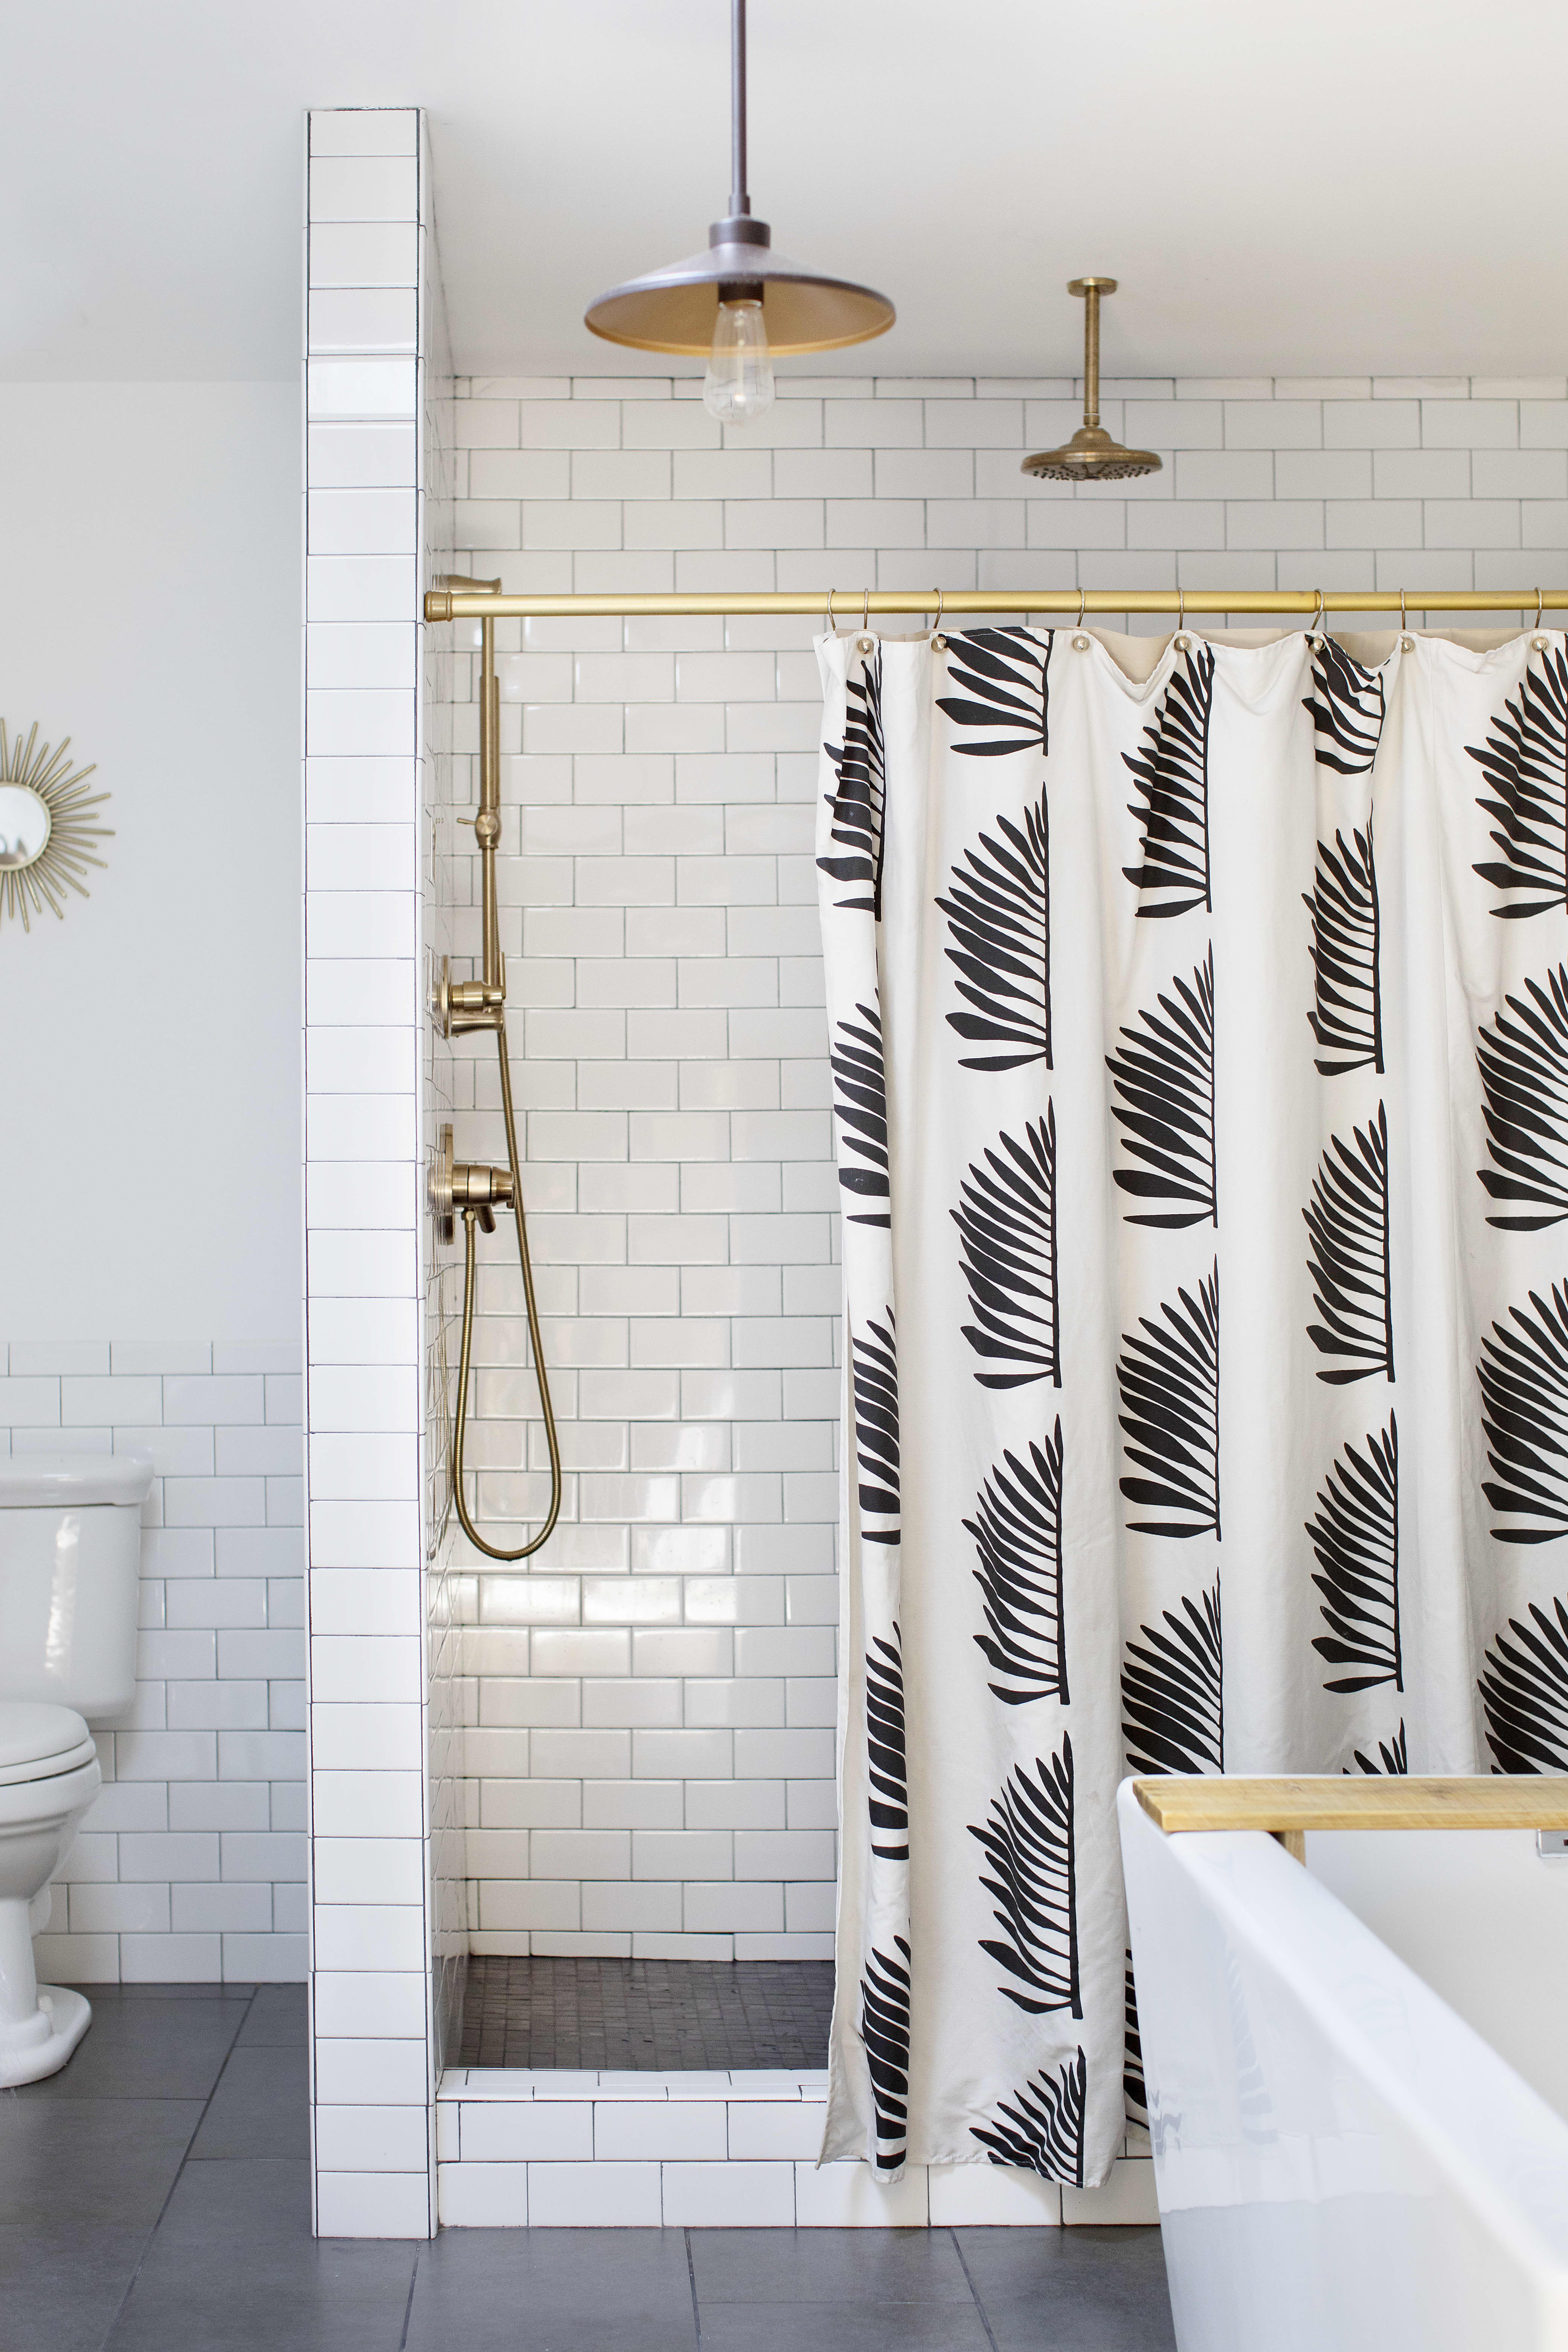 So… Is it OK to Pee in the Shower?